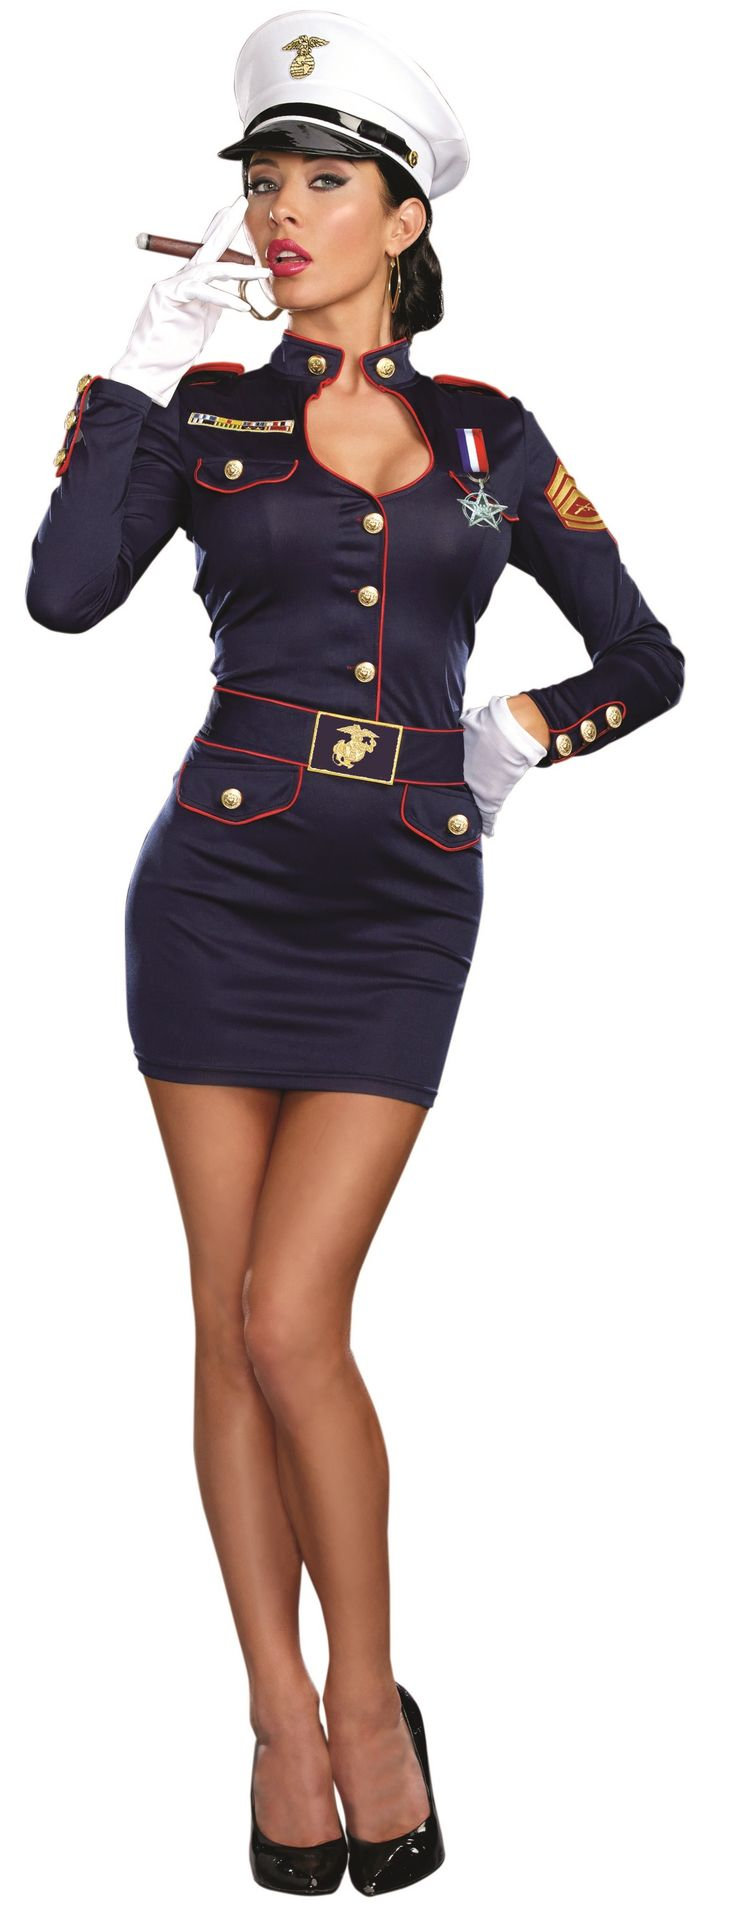 67 Best Uniforms - Womens Costumes Images On Pinterest-3121